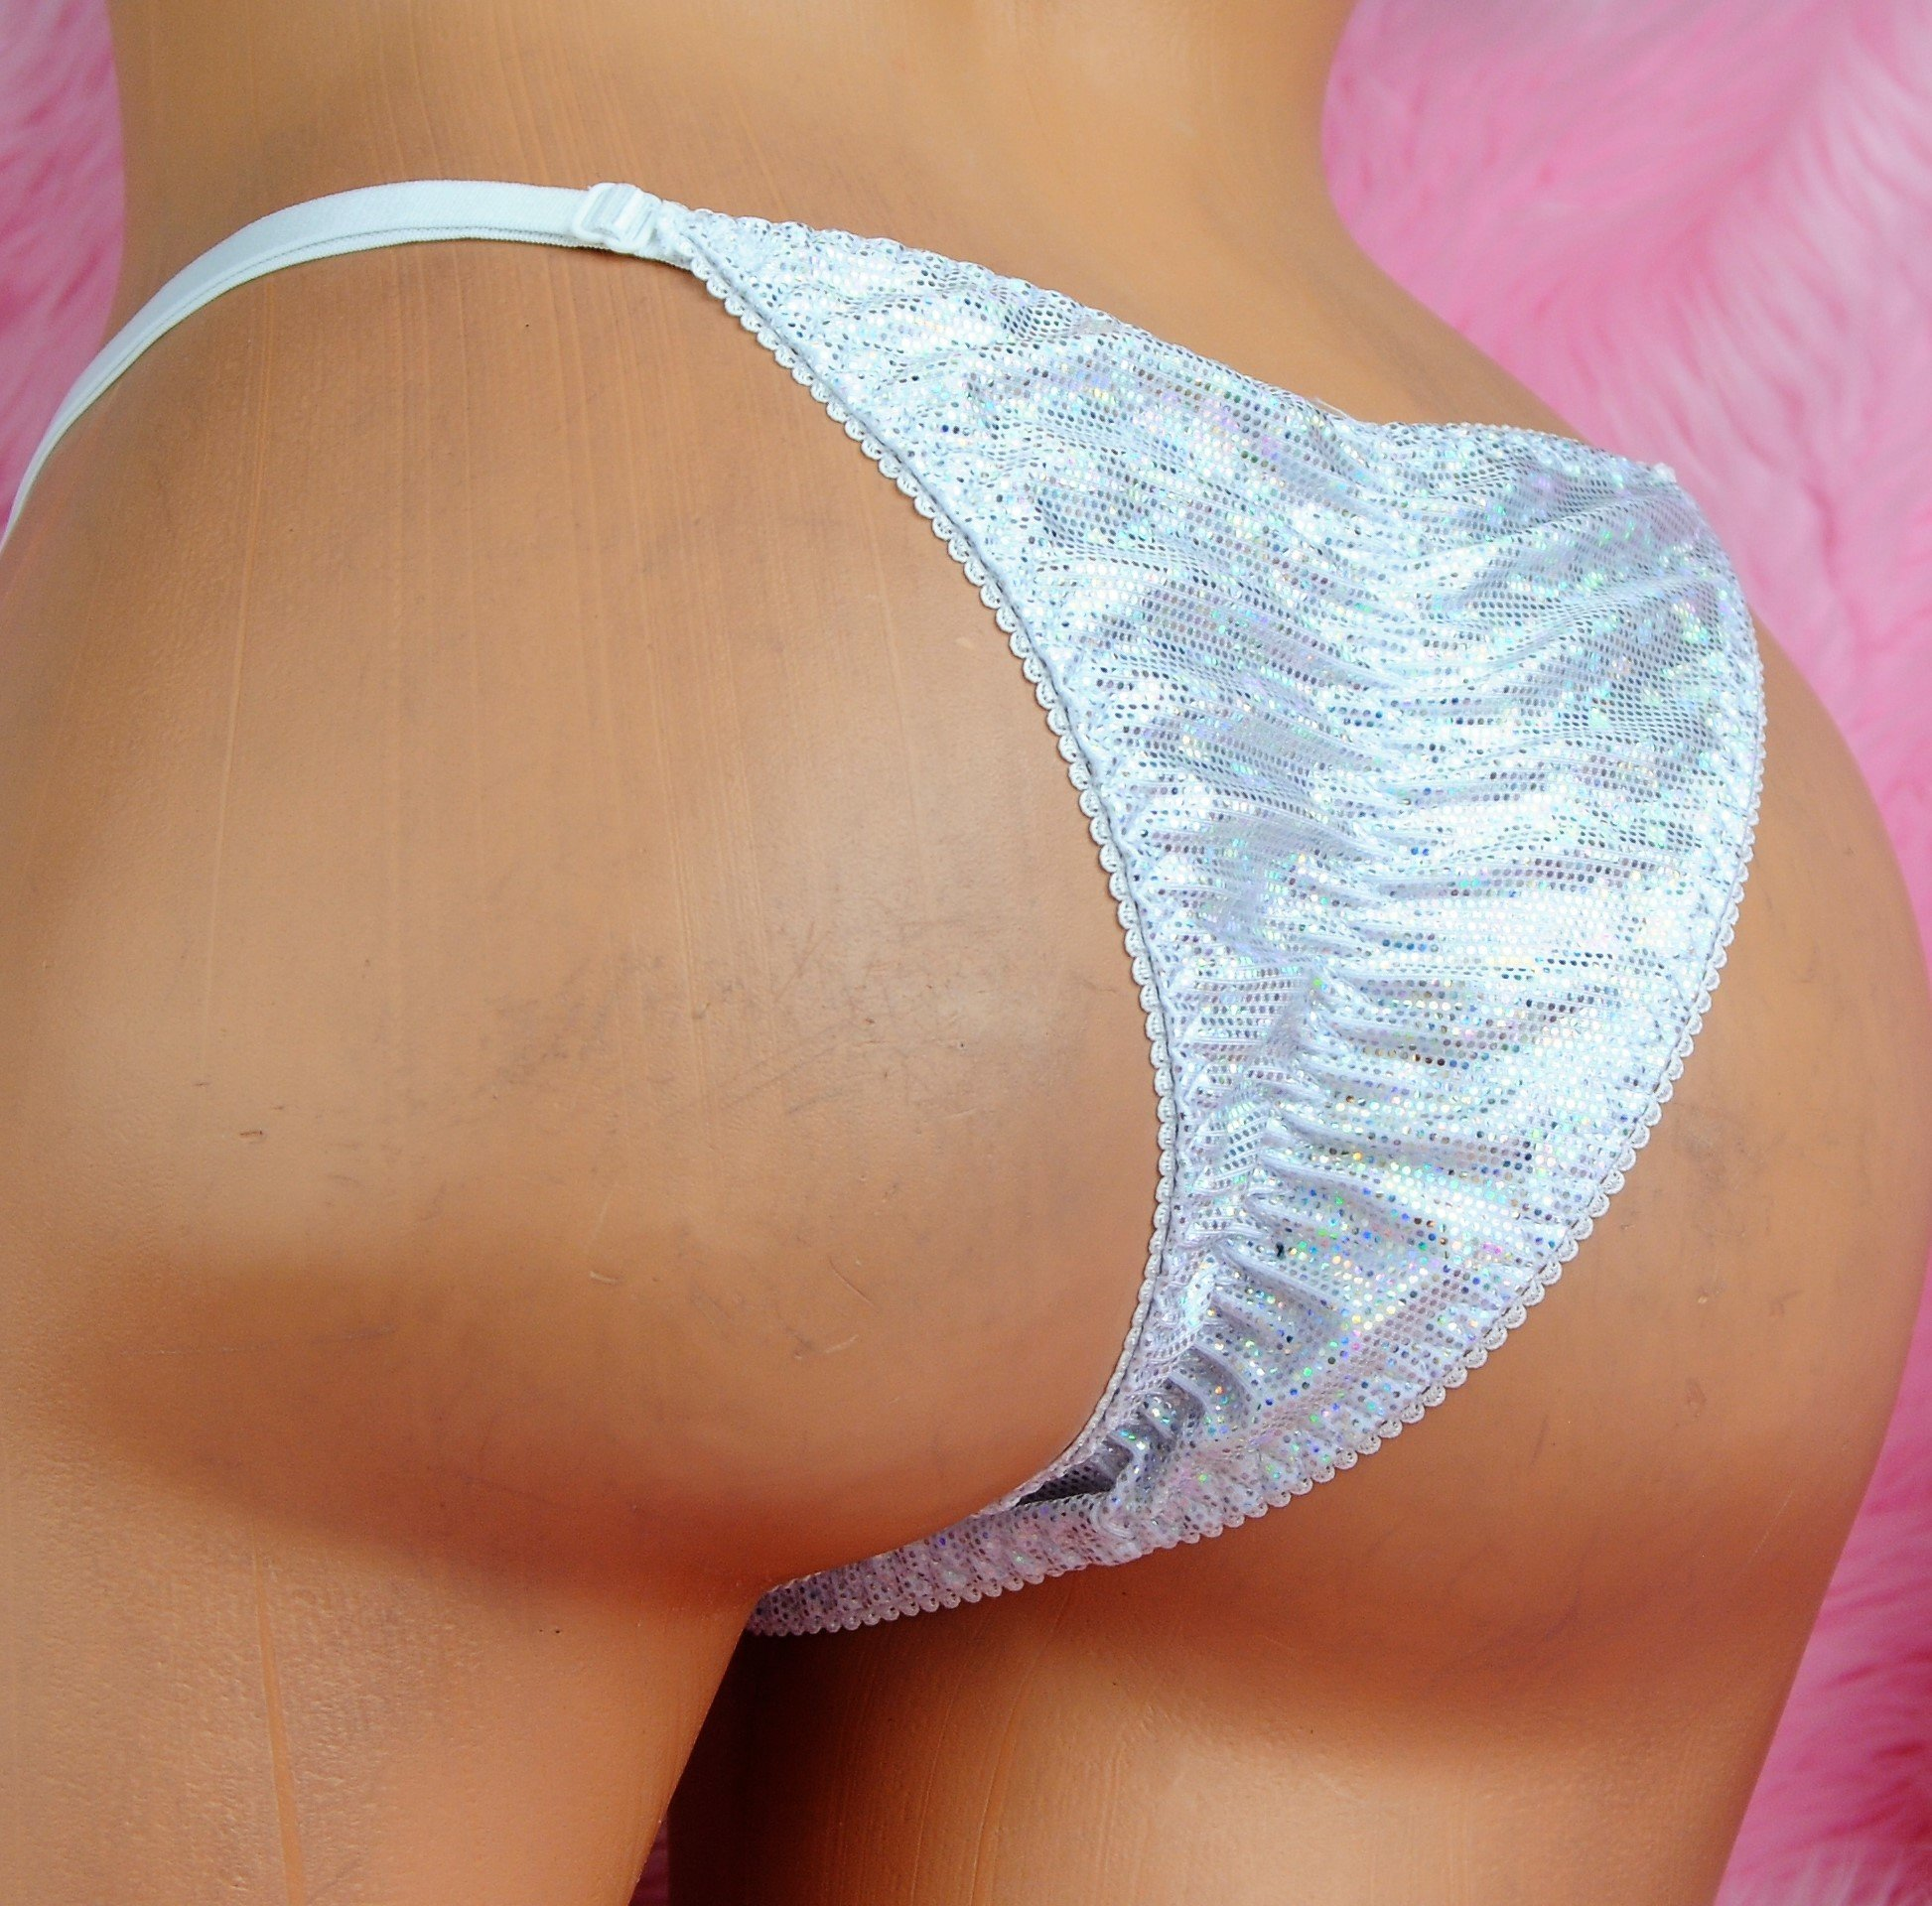 Ania's Cheeky SPANDEX SPARKLE naughty Brazilian Exotic dancer stripper panties with adjustable sides!